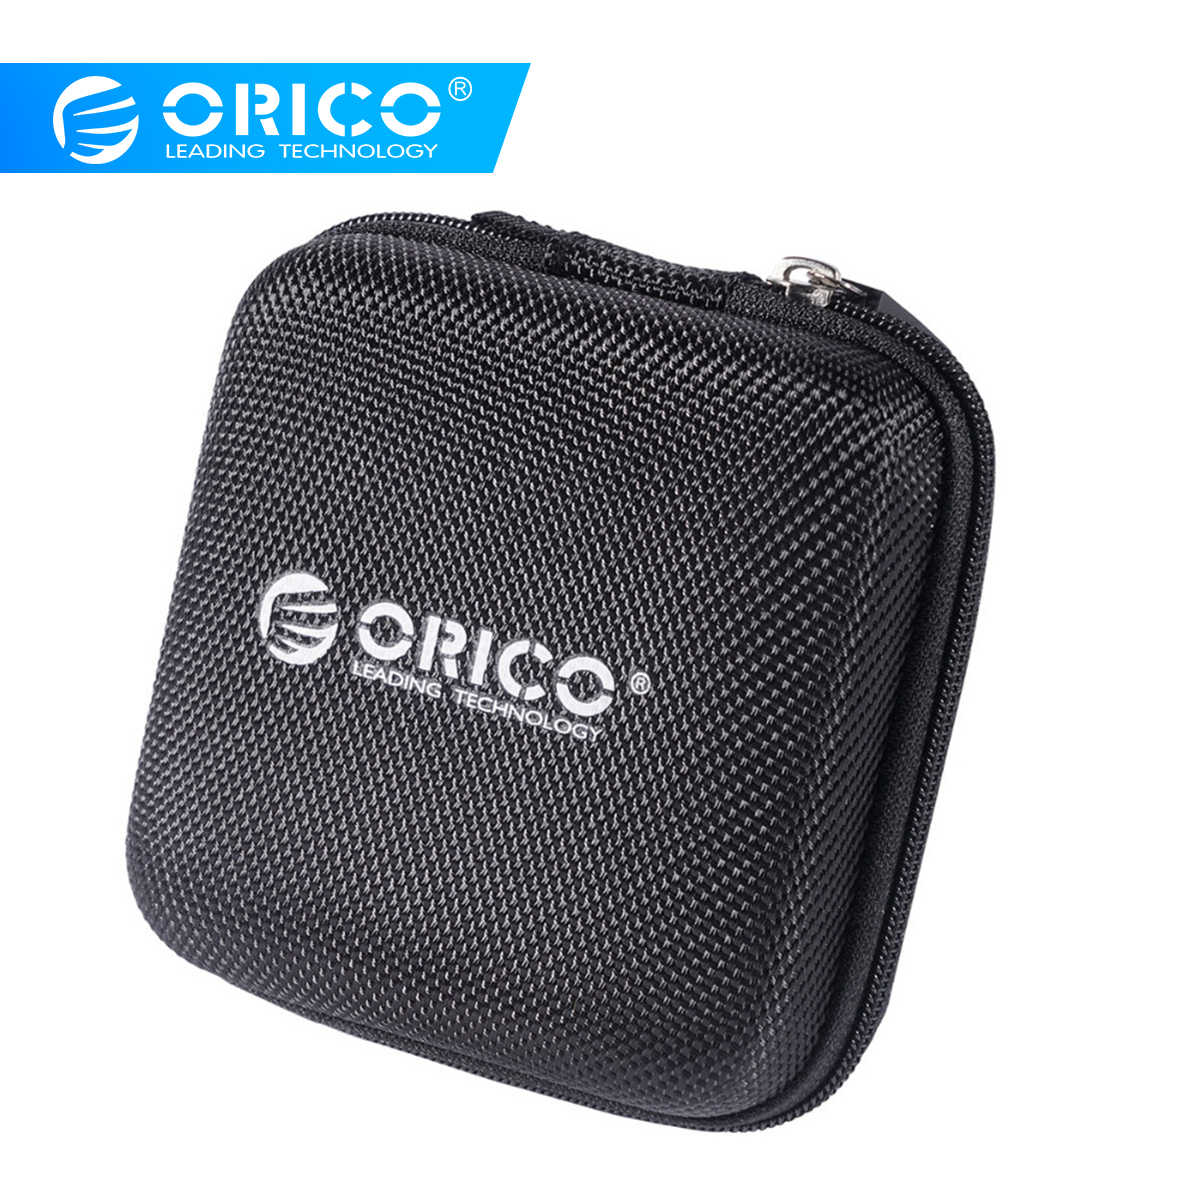 ORICO Headphone Case Bag Portable Earphone Earbuds Mini Earphone Bag Storage Case Bag for Memory Card USB Cable Organizer